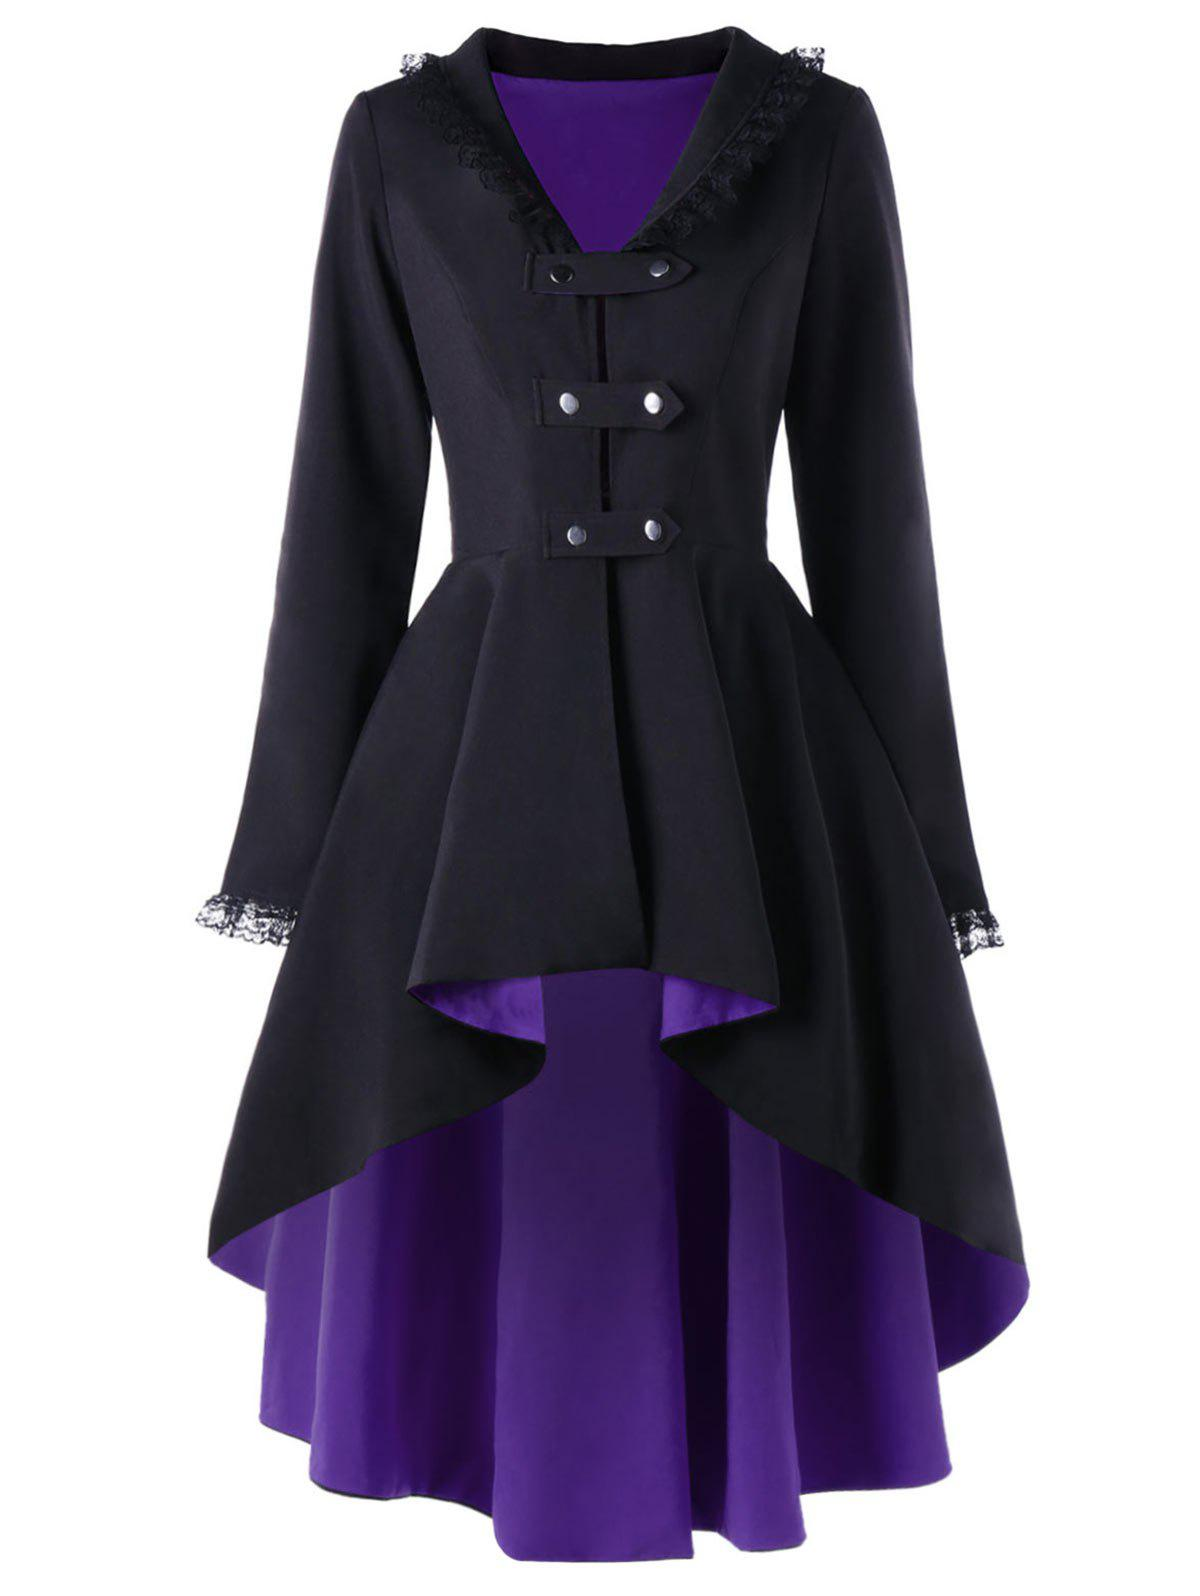 Lace Trimmed High Low Gothic Coat - PURPLE M